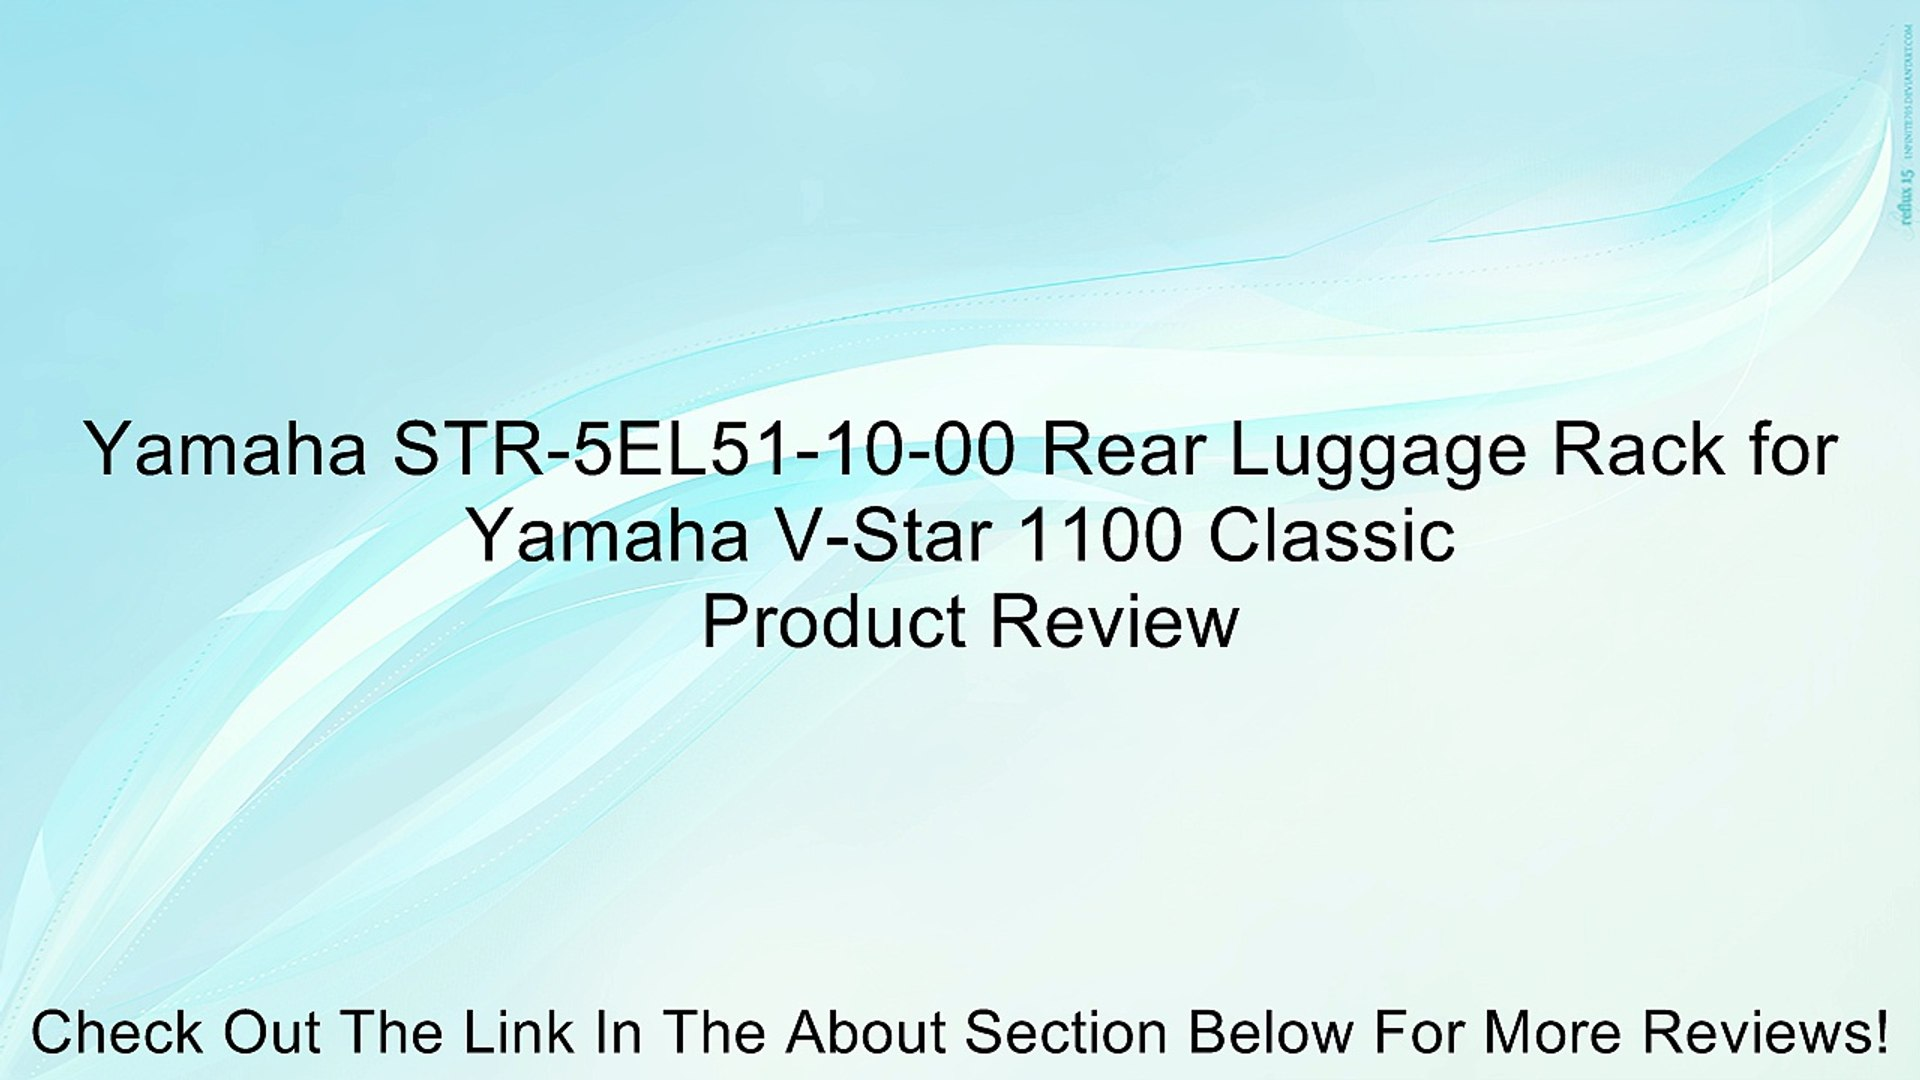 Yamaha STR-5EL51-10-00 Rear Luggage Rack for Yamaha V-Star 1100 Classic  Review